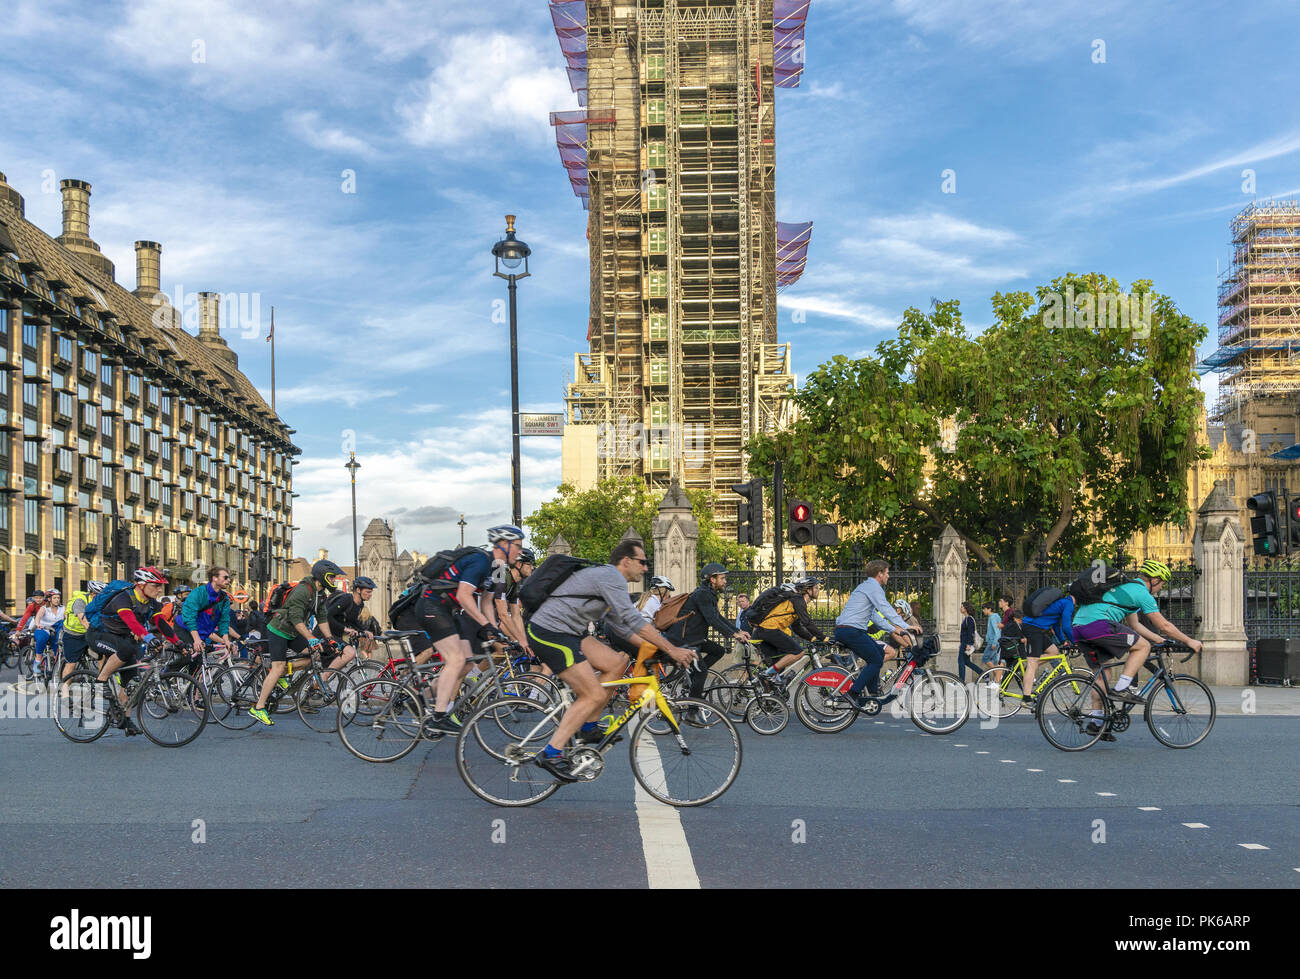 10 September 2018 - London, England. Busy rush hour scene in Parliament Square. Active Londoners cycling from work. - Stock Image